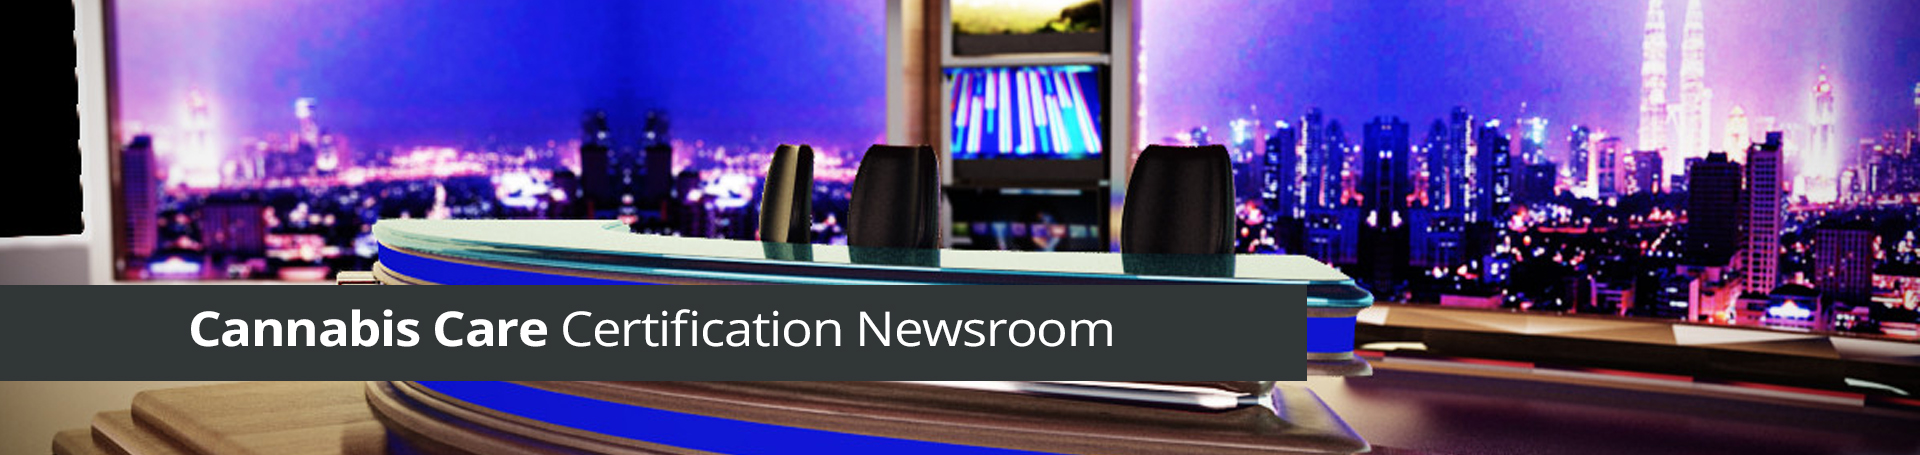 CCC Newsroom Header